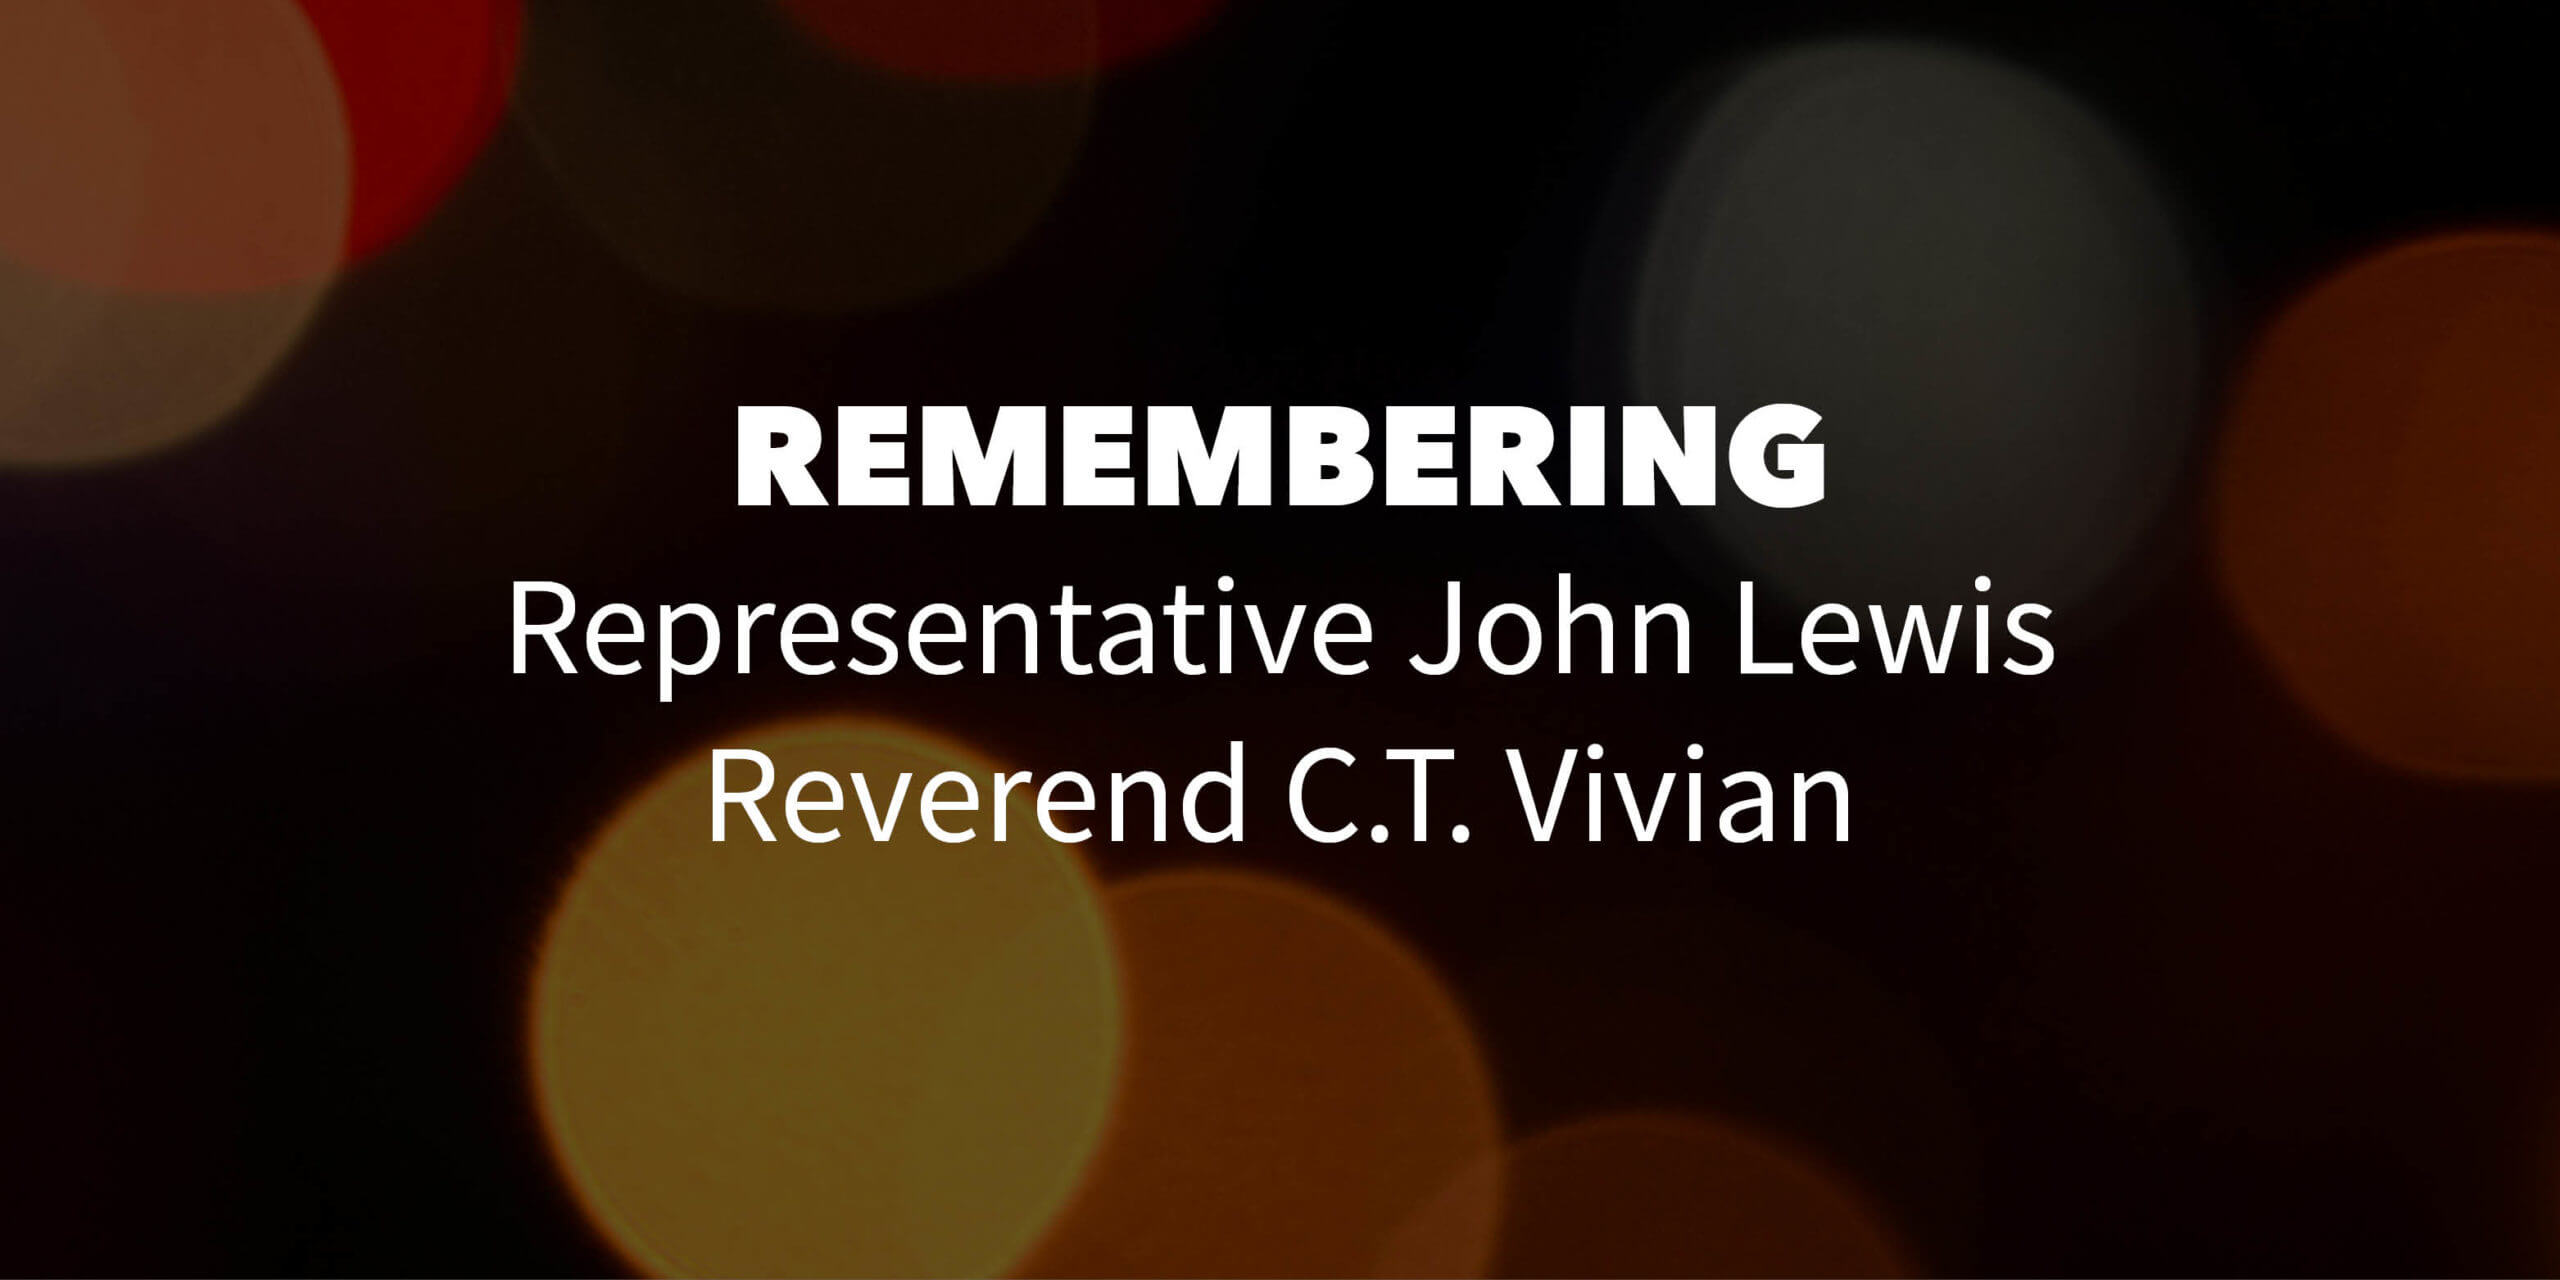 """dark background with bokeh effect. Text overlay reads """"remembering Representative John Lewis and Reverend C.T. Vivian"""""""